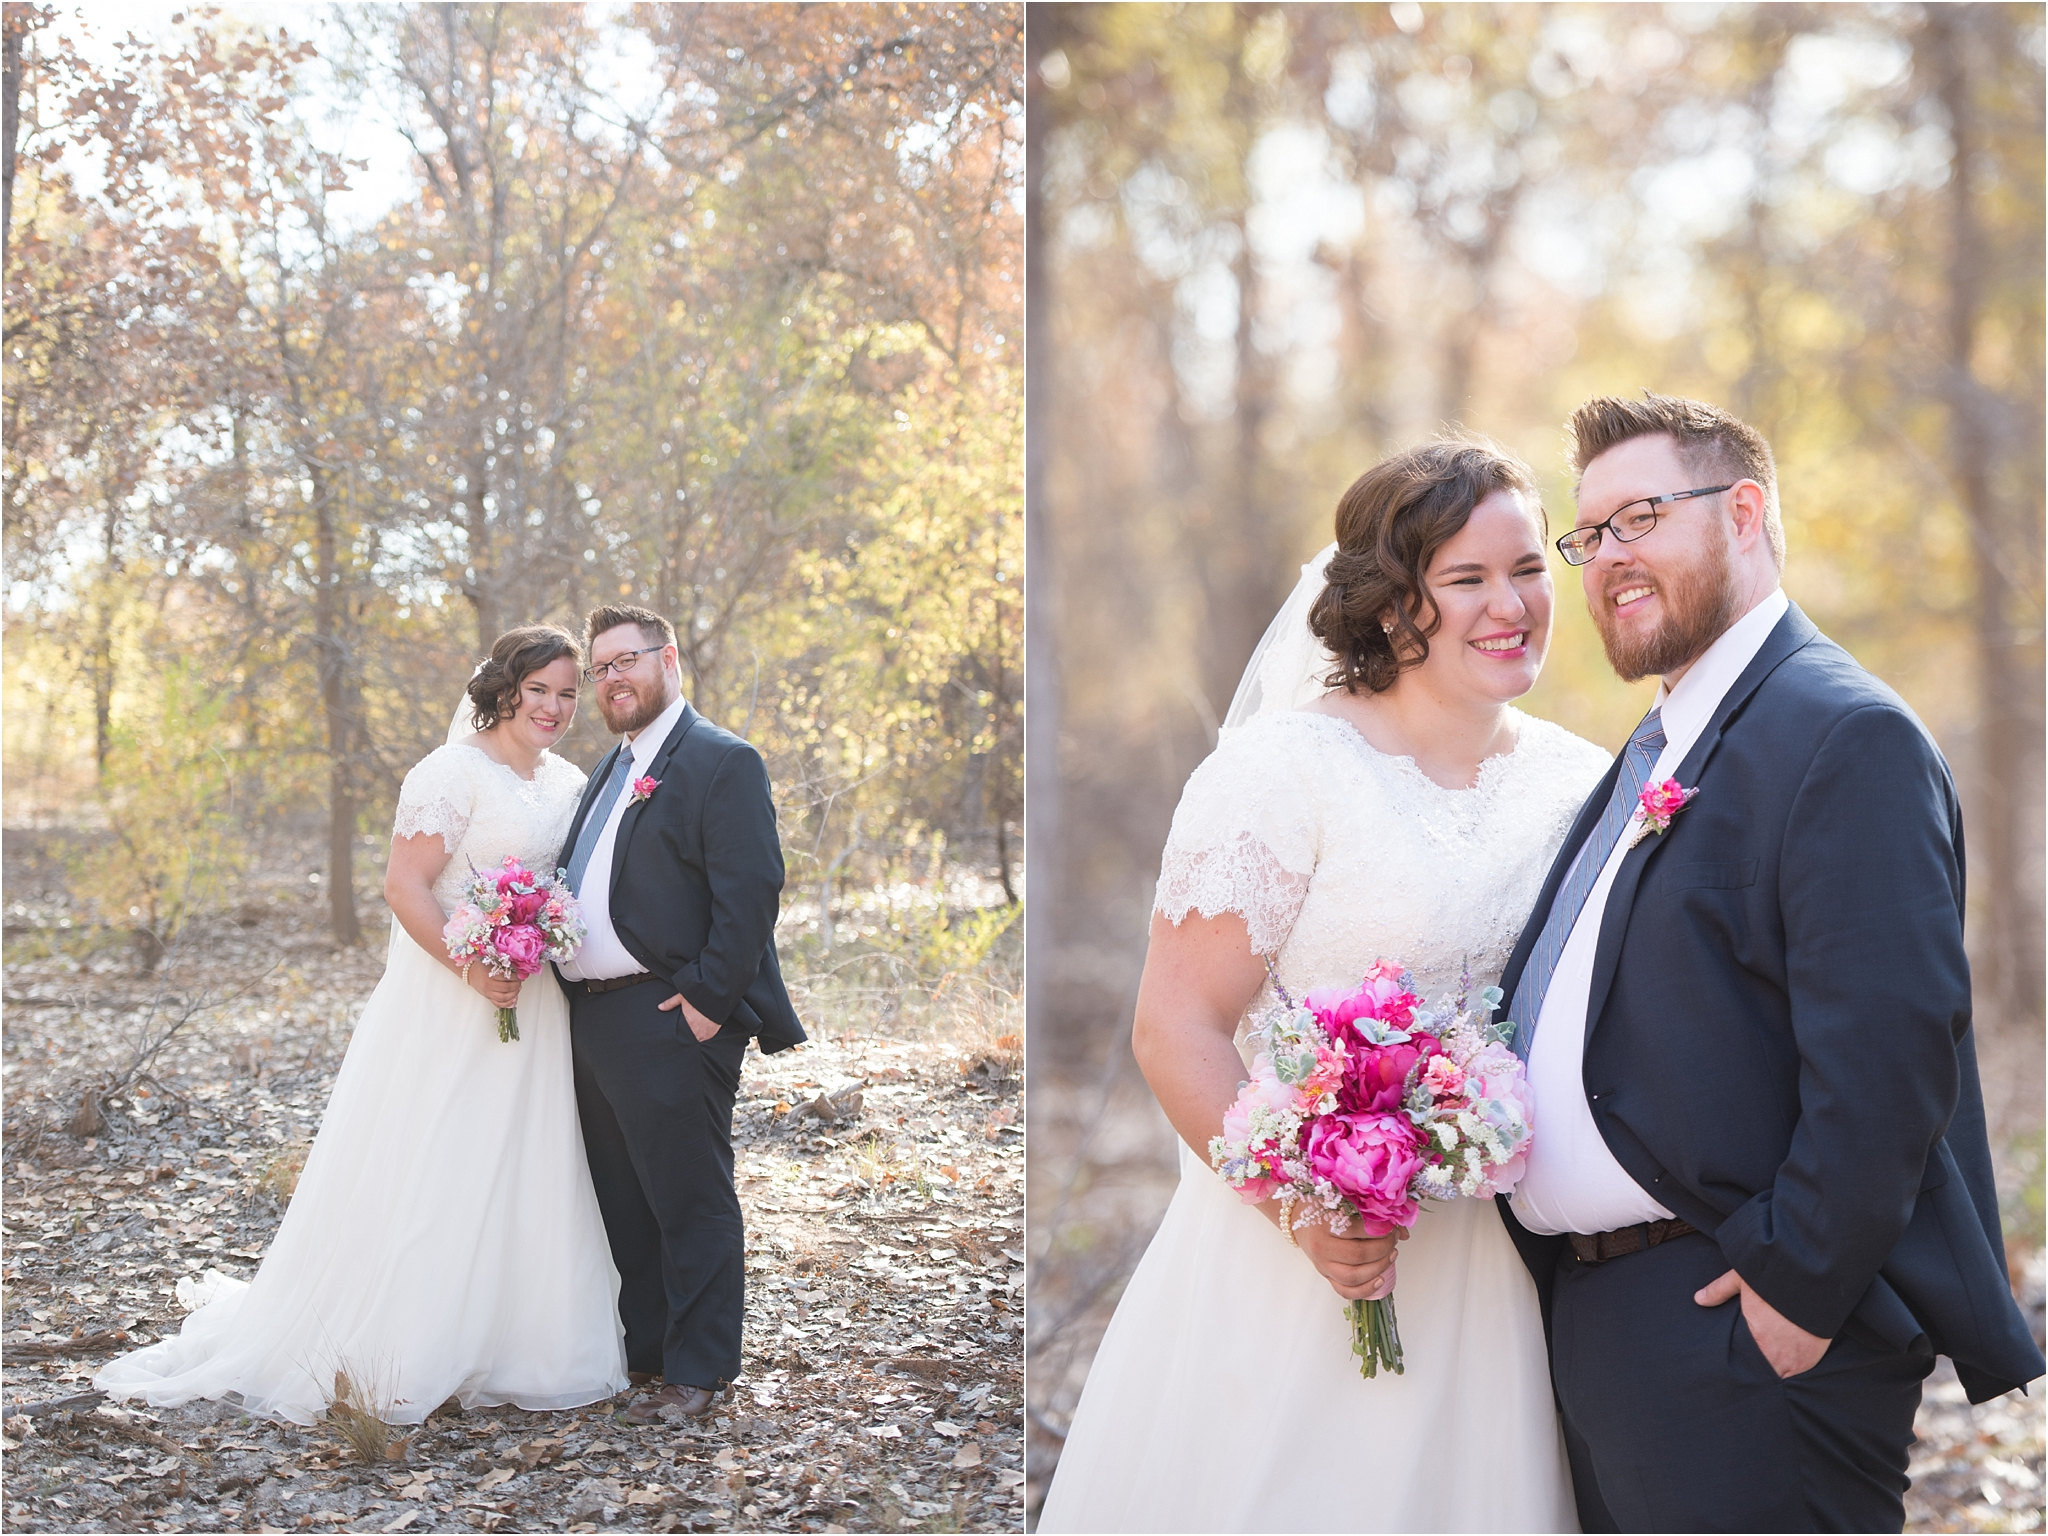 kayla kitts photography - albuquerque wedding photographer - hairpins and scissors - a cake odyssey - new mexico wedding photographer_0114.jpg